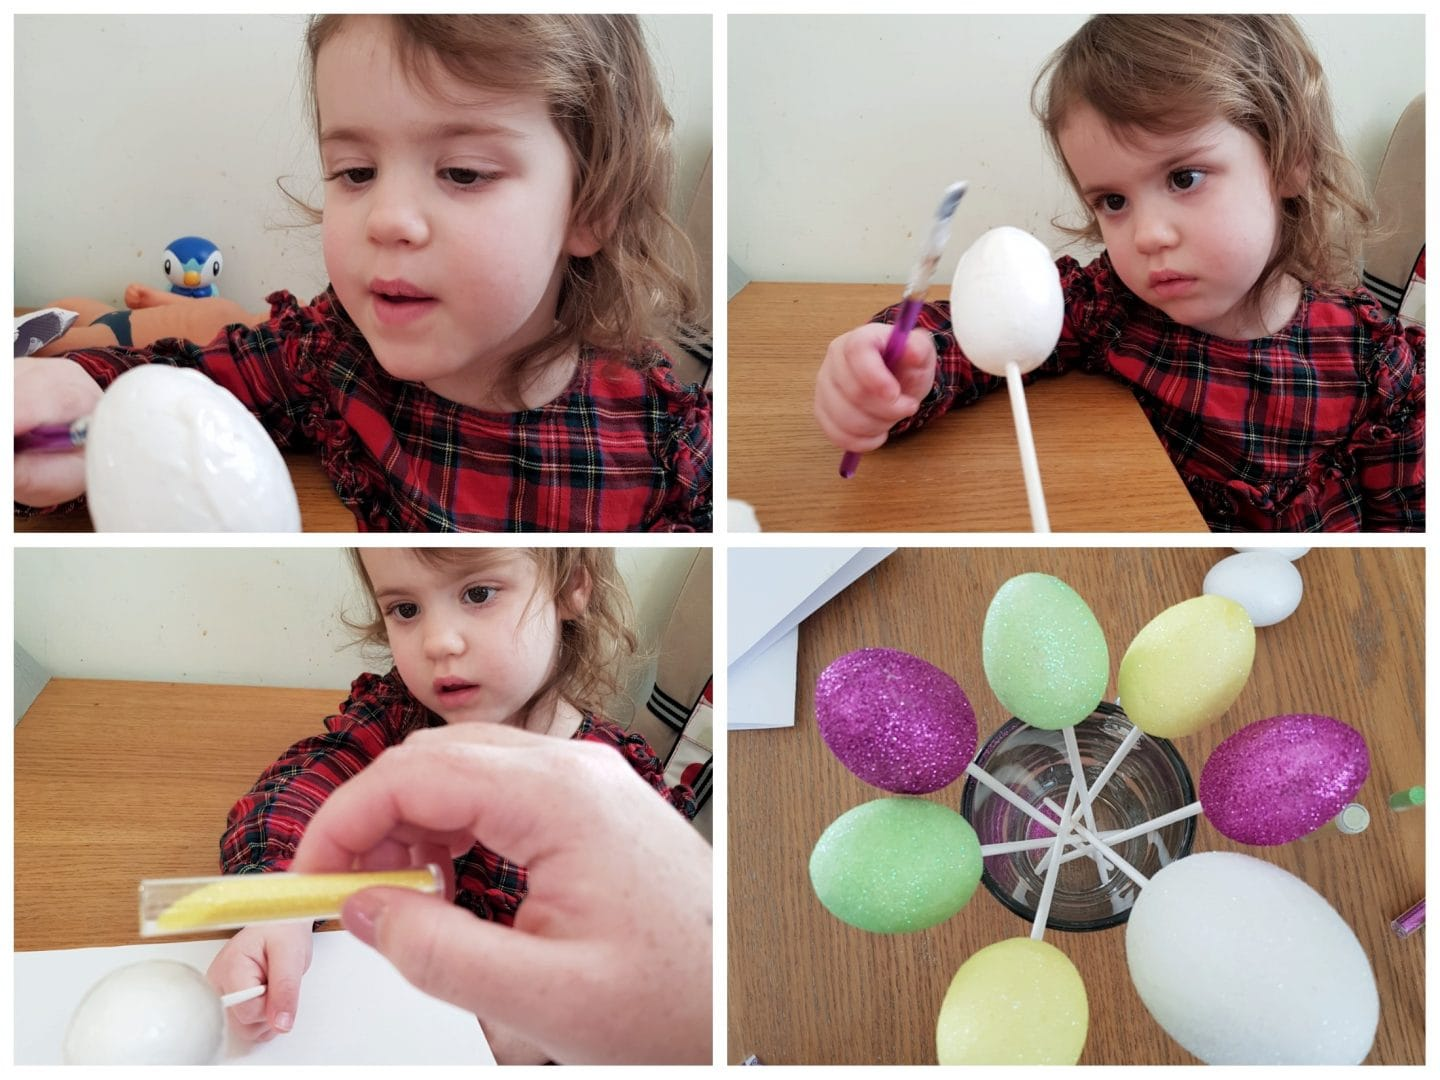 Littlest helping to make glitter eggs